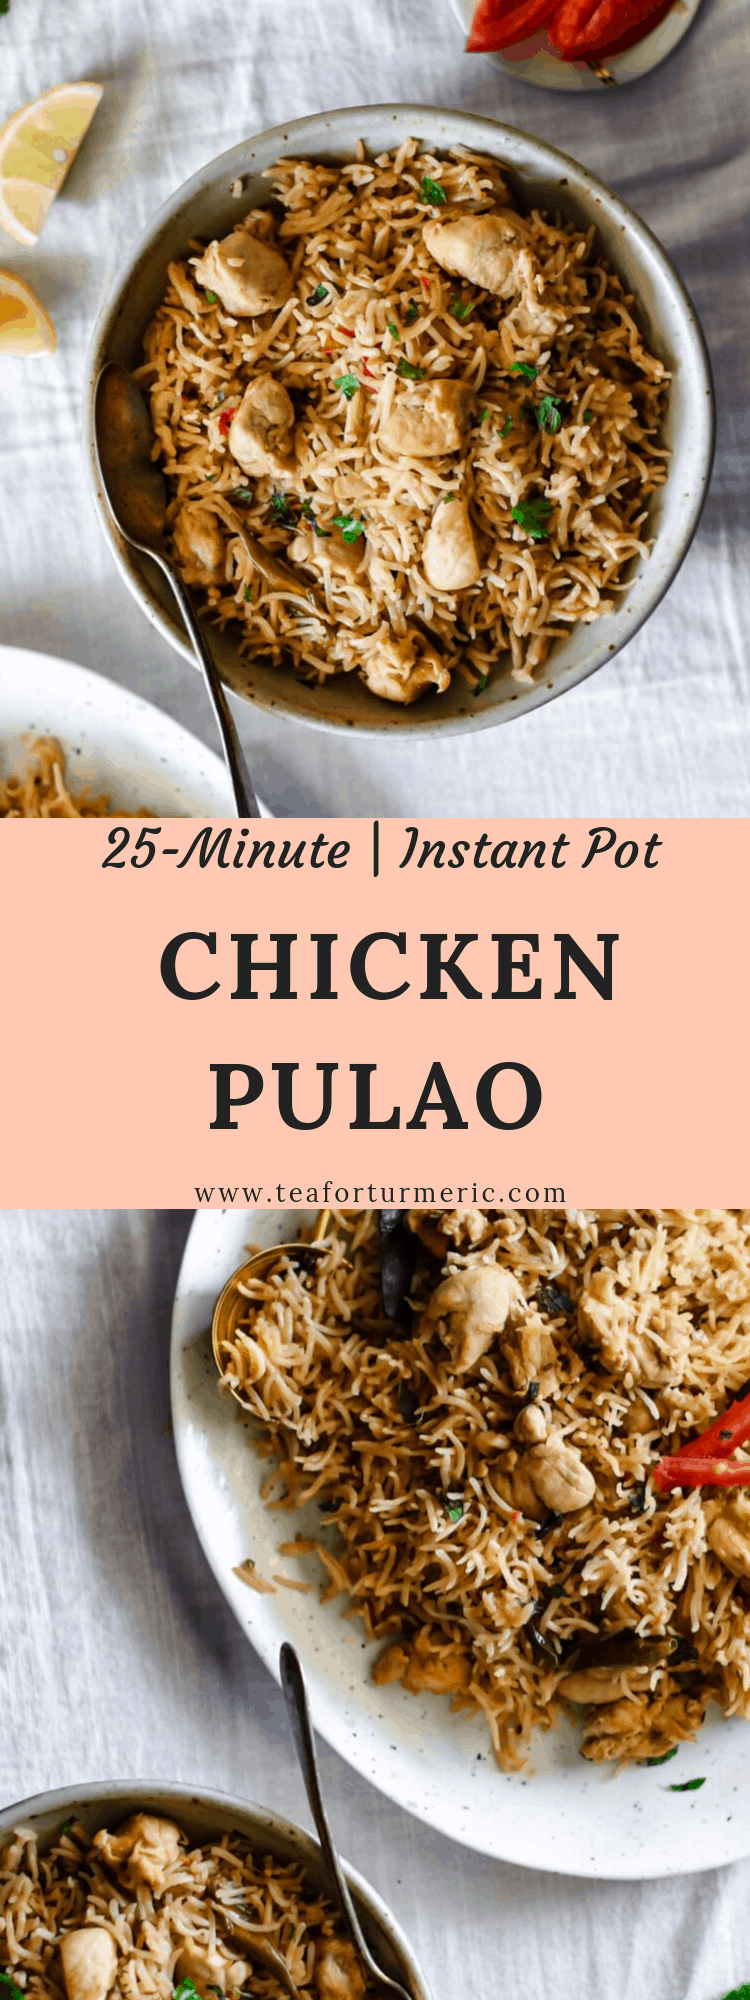 Pulao, or pilaf, is a delicately flavored rice dish popular in Pakistani and Indian cooking. This Instant Pot Chicken Pulao recipe requires just 25 minutes of prep time and results in tender boneless chicken and perfectly cooked rice.